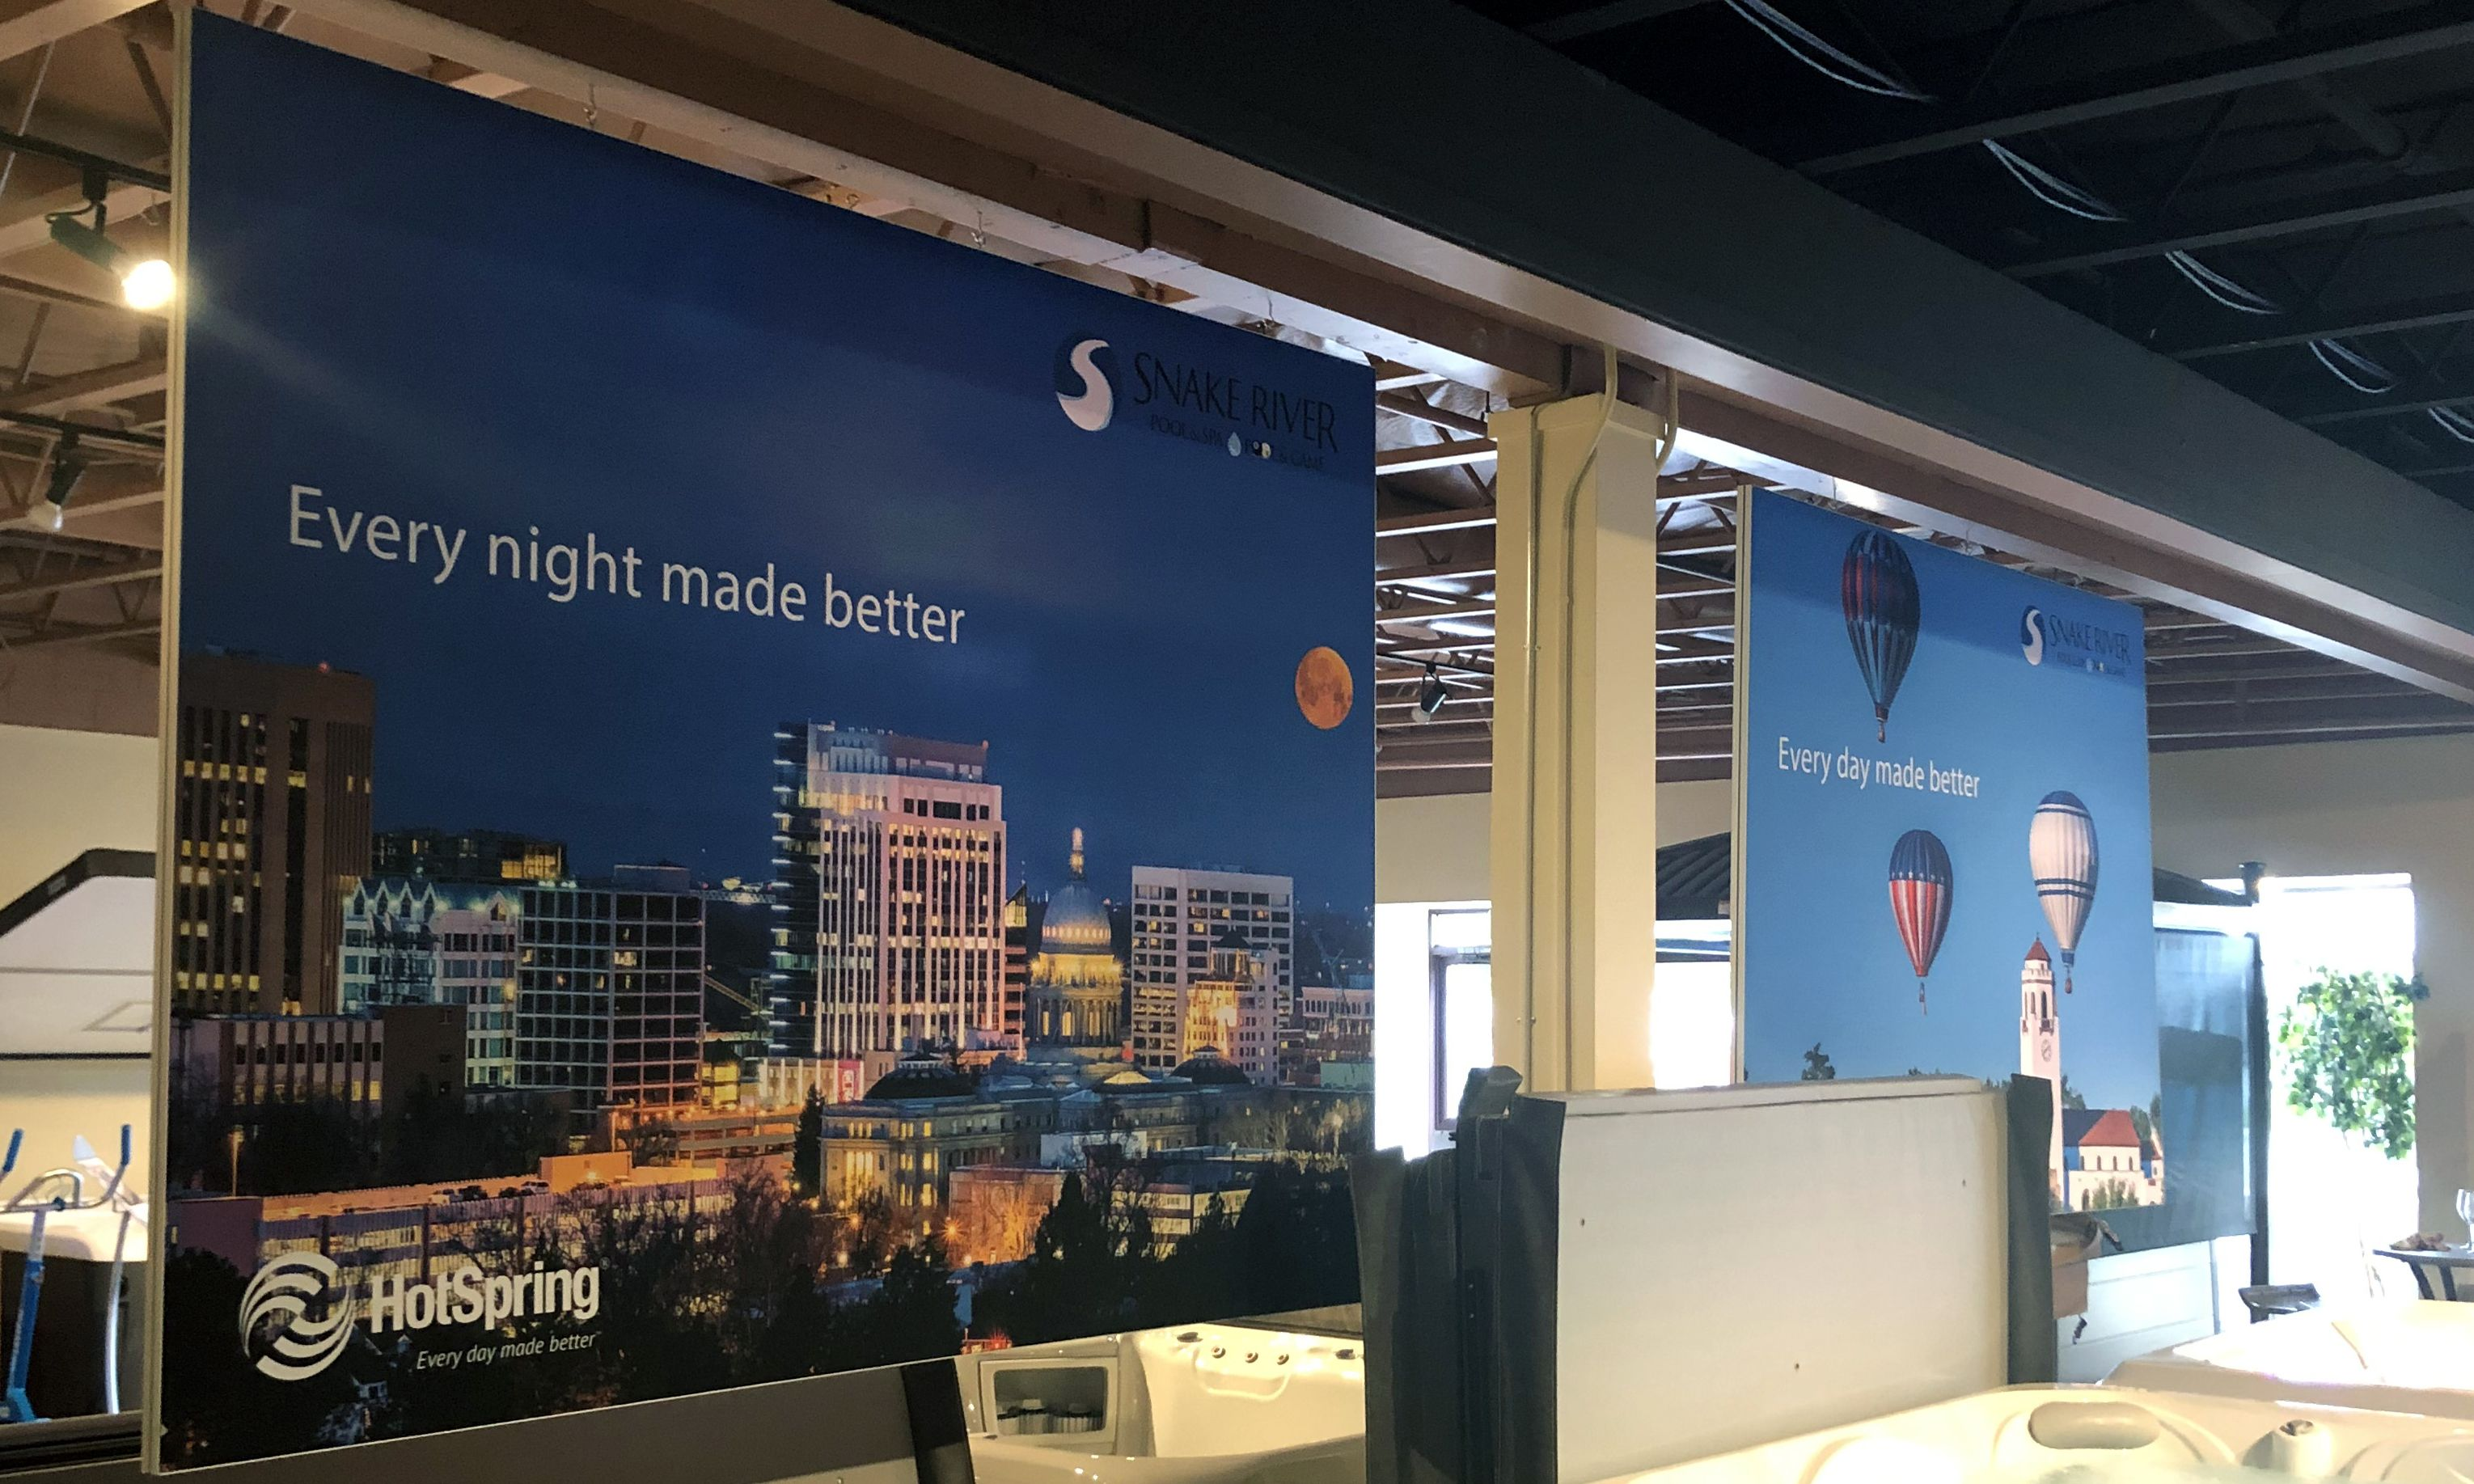 Fabric indoor office banner for Every night made better